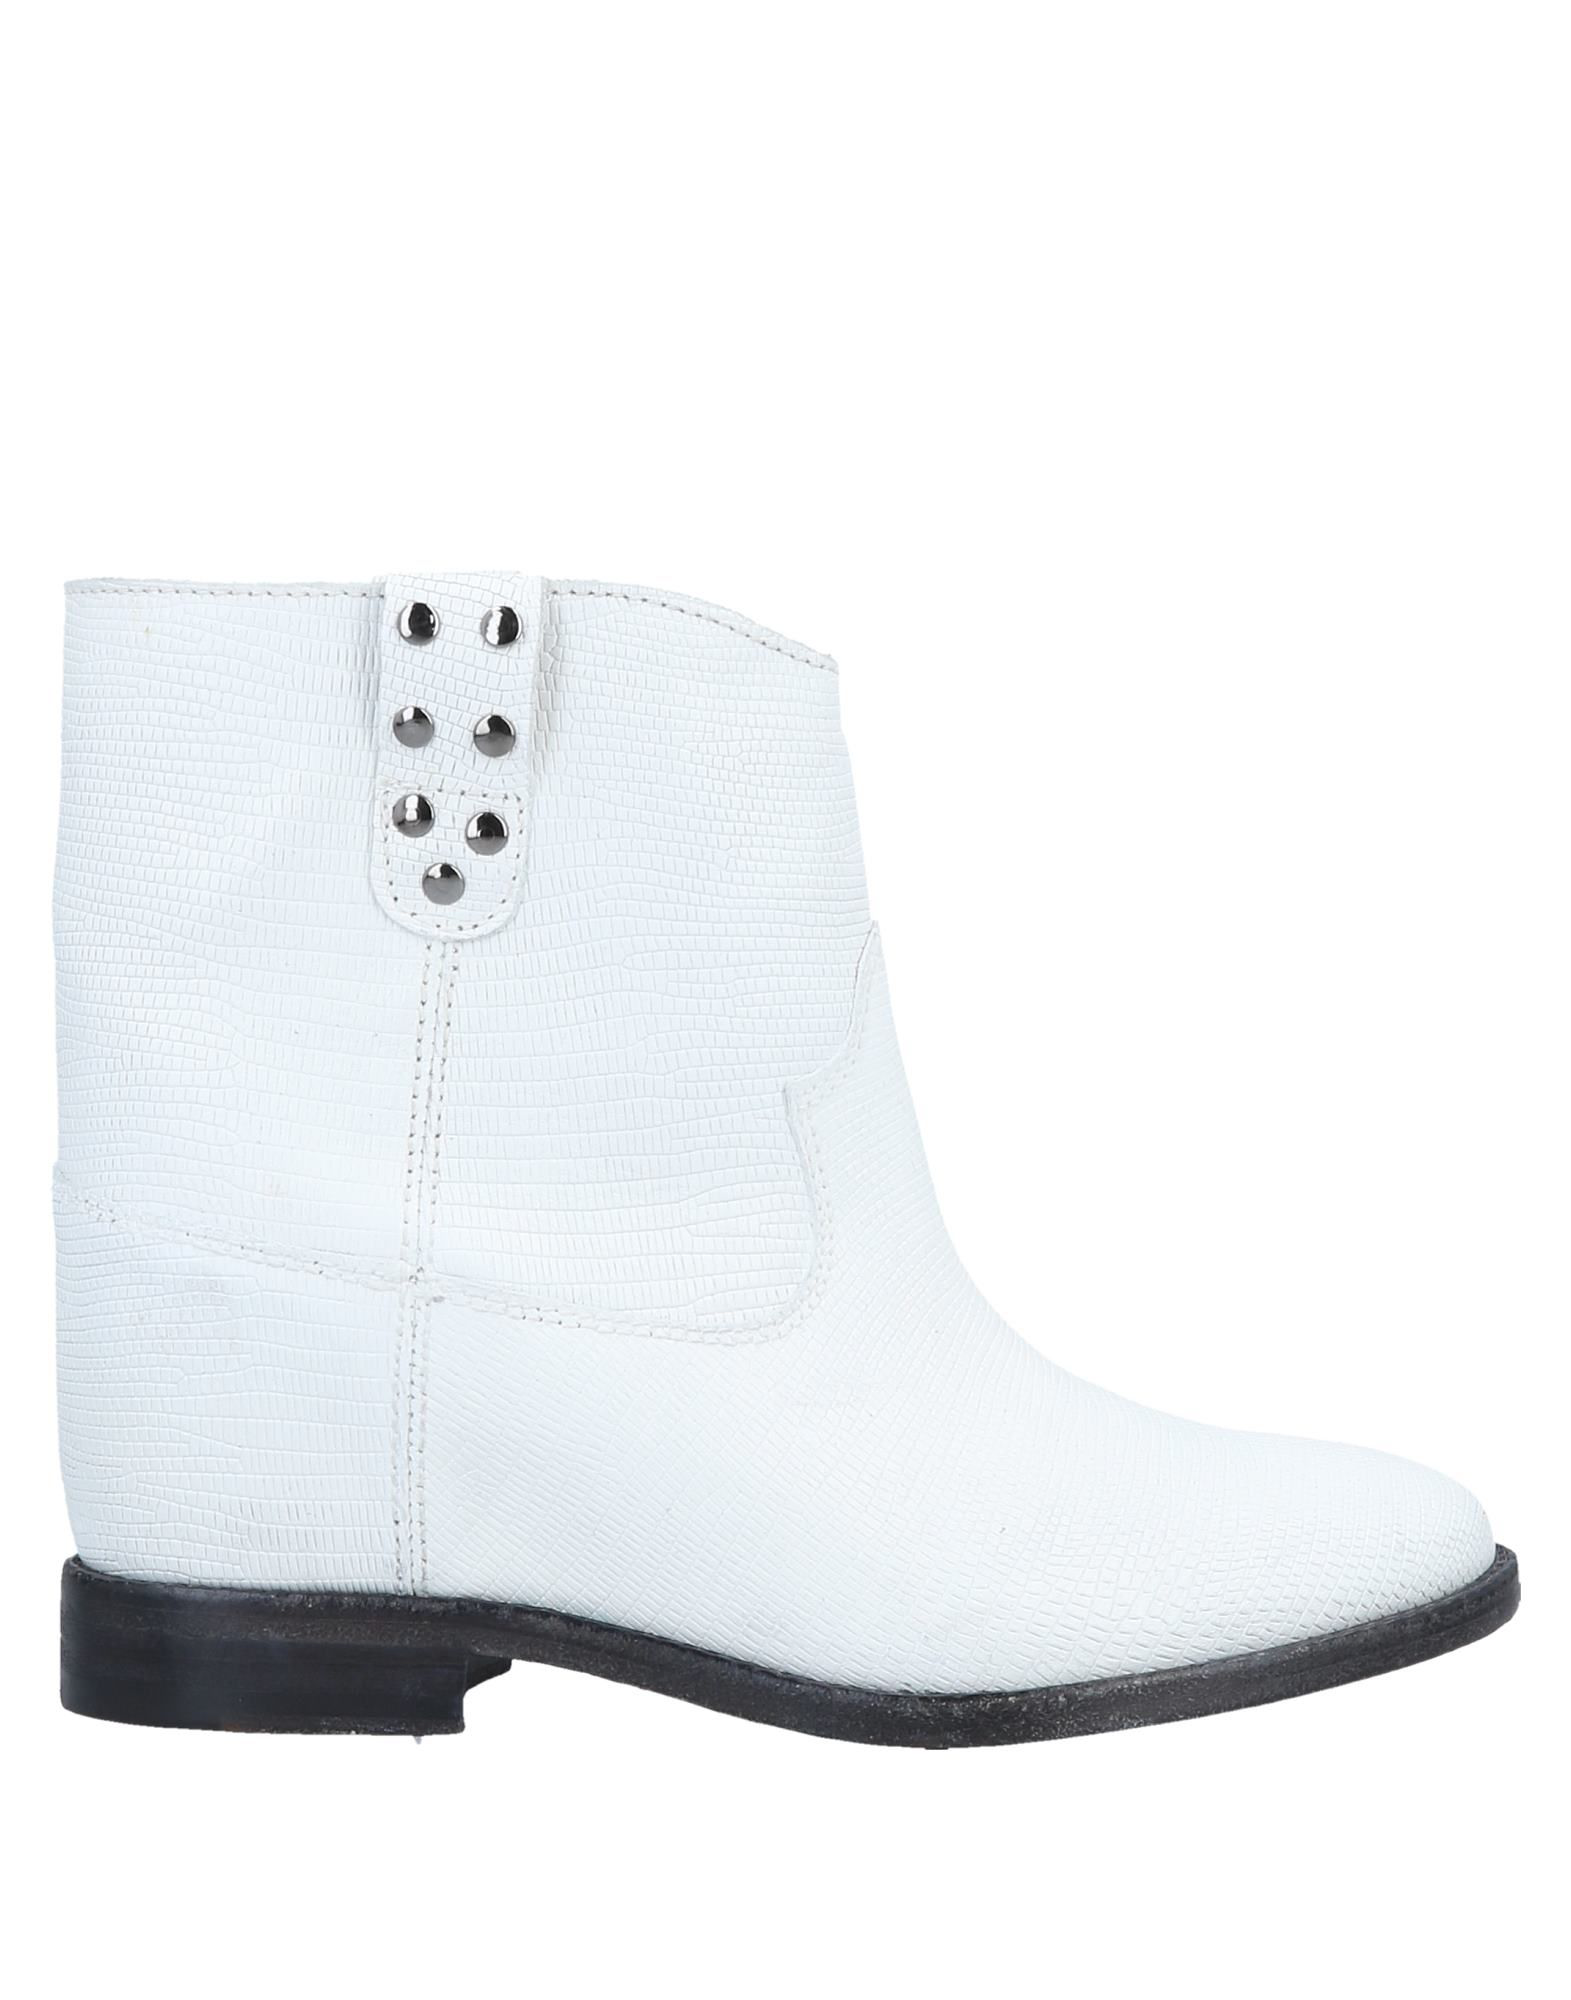 finest selection 8ceb4 dc20b Ankle Boot in White